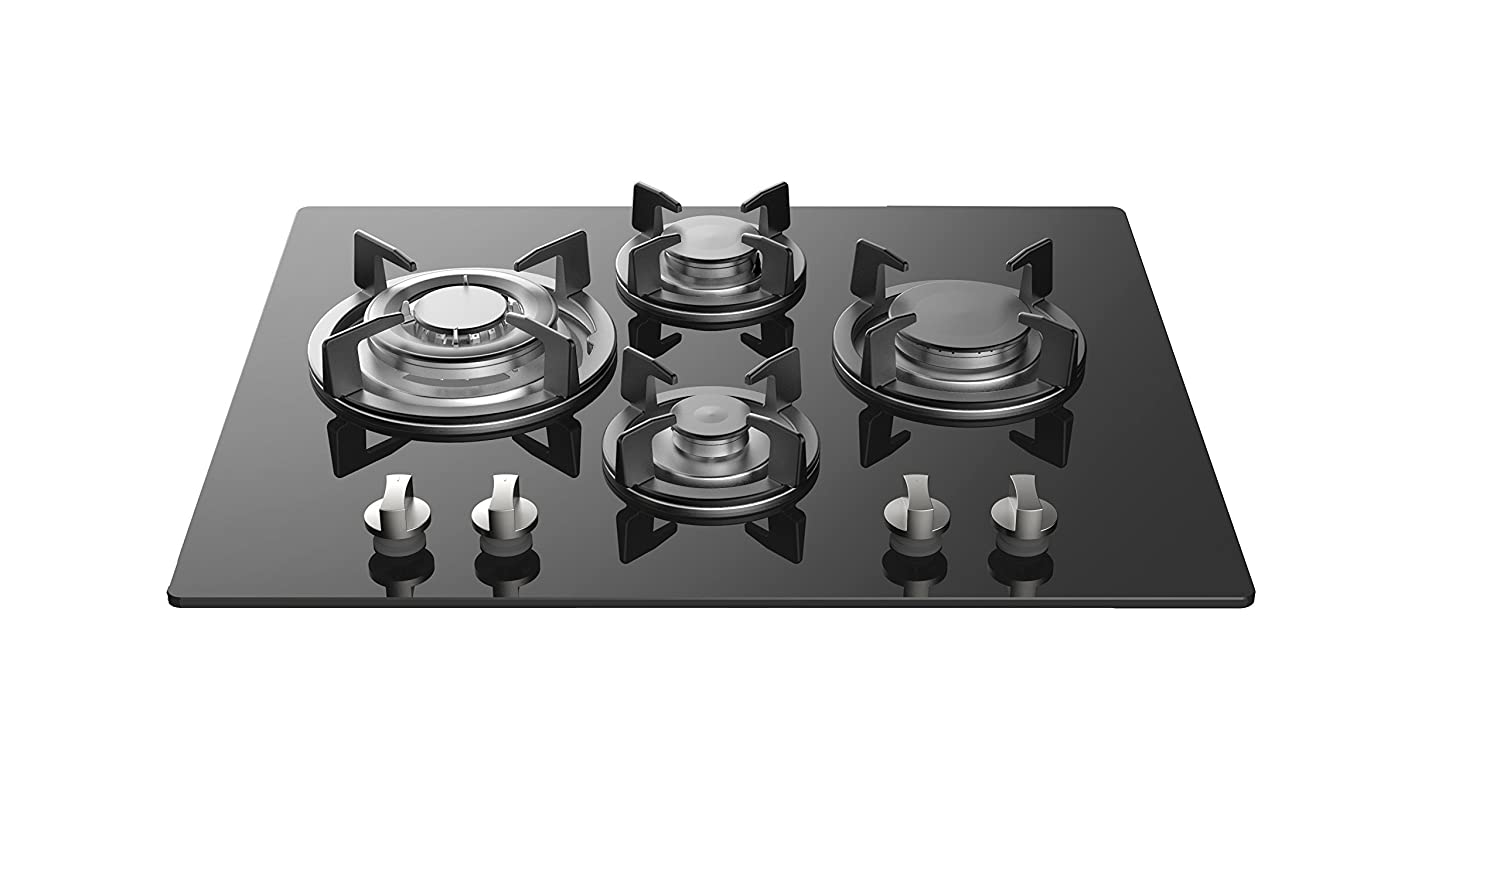 Empava 24' Tempered Glass 4 Italy Imported Sabaf Burners Stove Tops Gas Cooktop EMPV-24GC4L67A